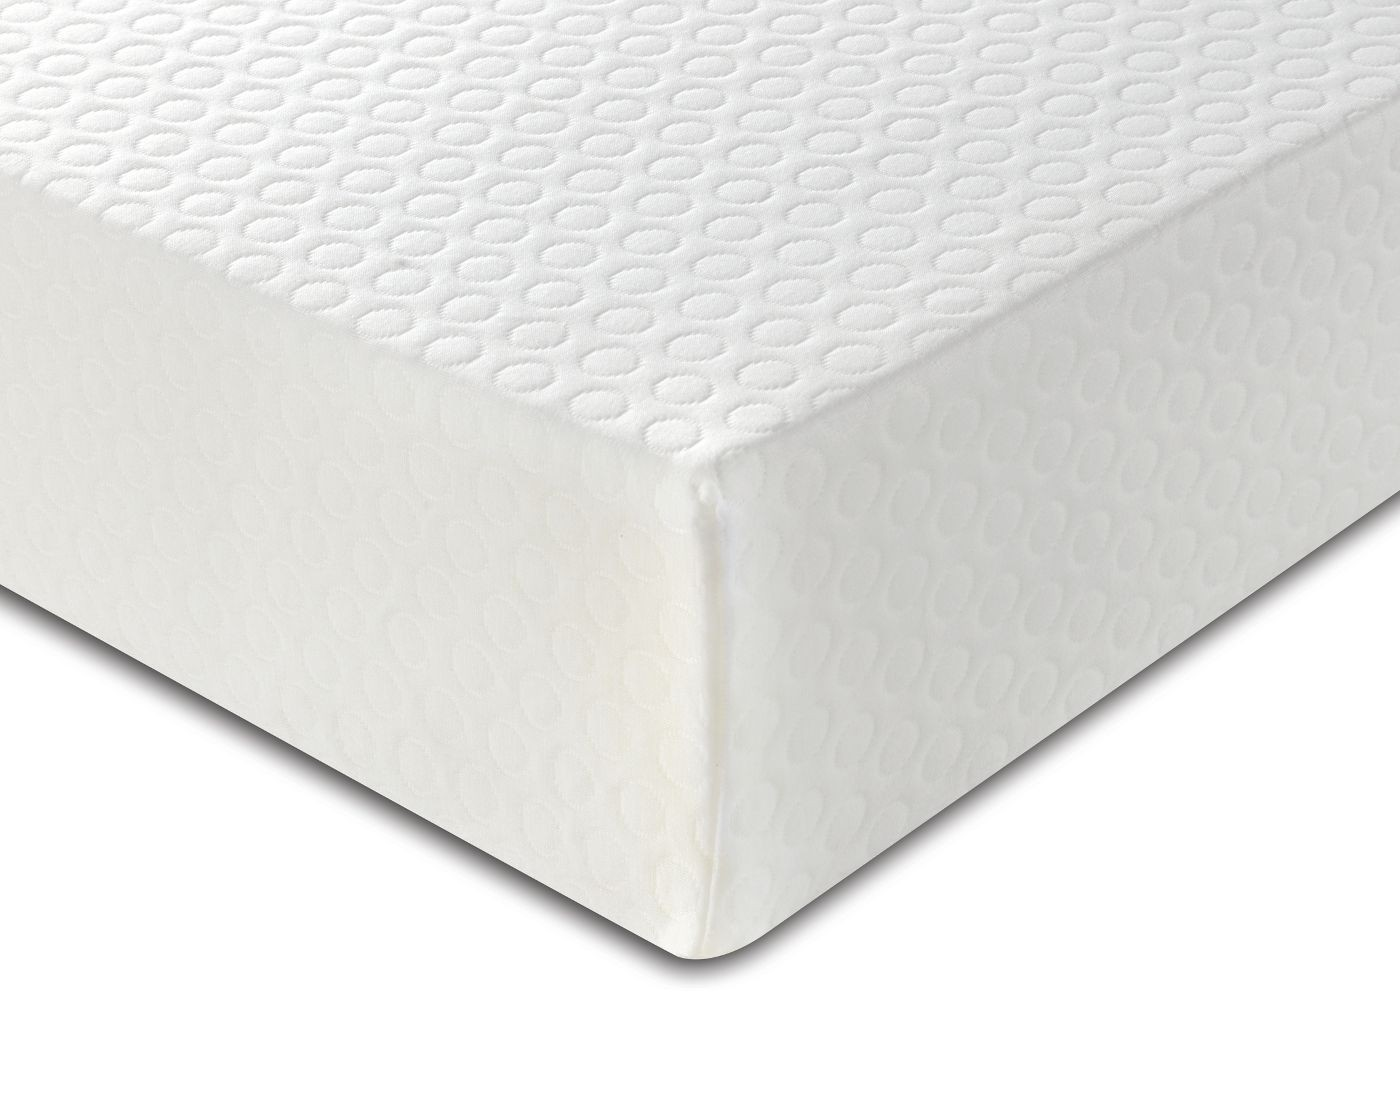 Does Memory Foam Mattress Topper Go Underneath Bed Sheets